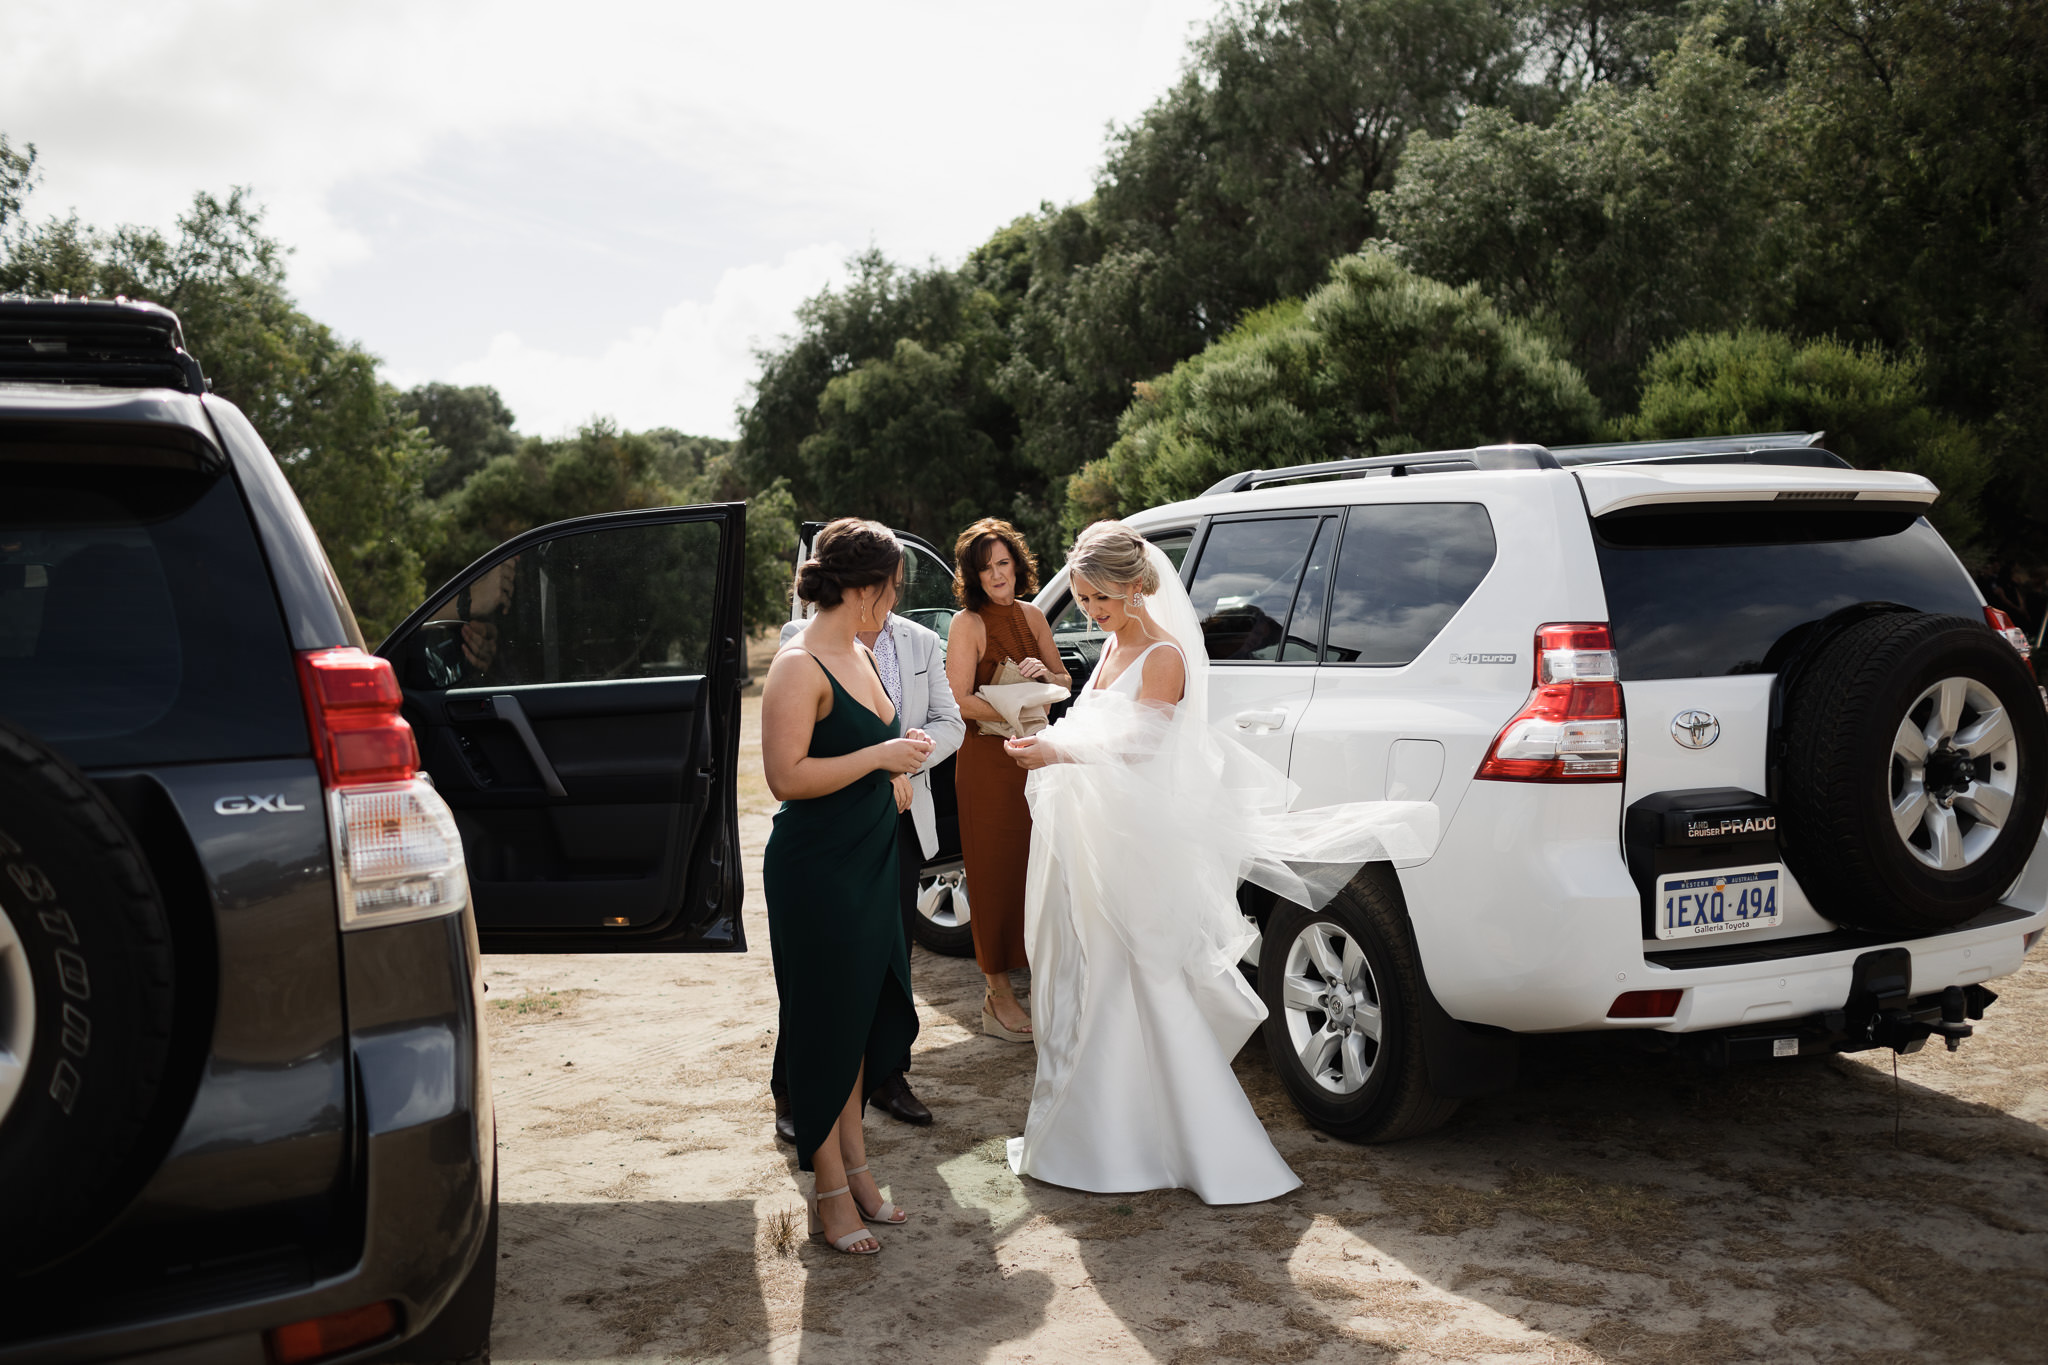 Bride and family arriving at wedding ceremony at Solitaire Homestead in Yallingup in Toyota Prado four wheel drive cars